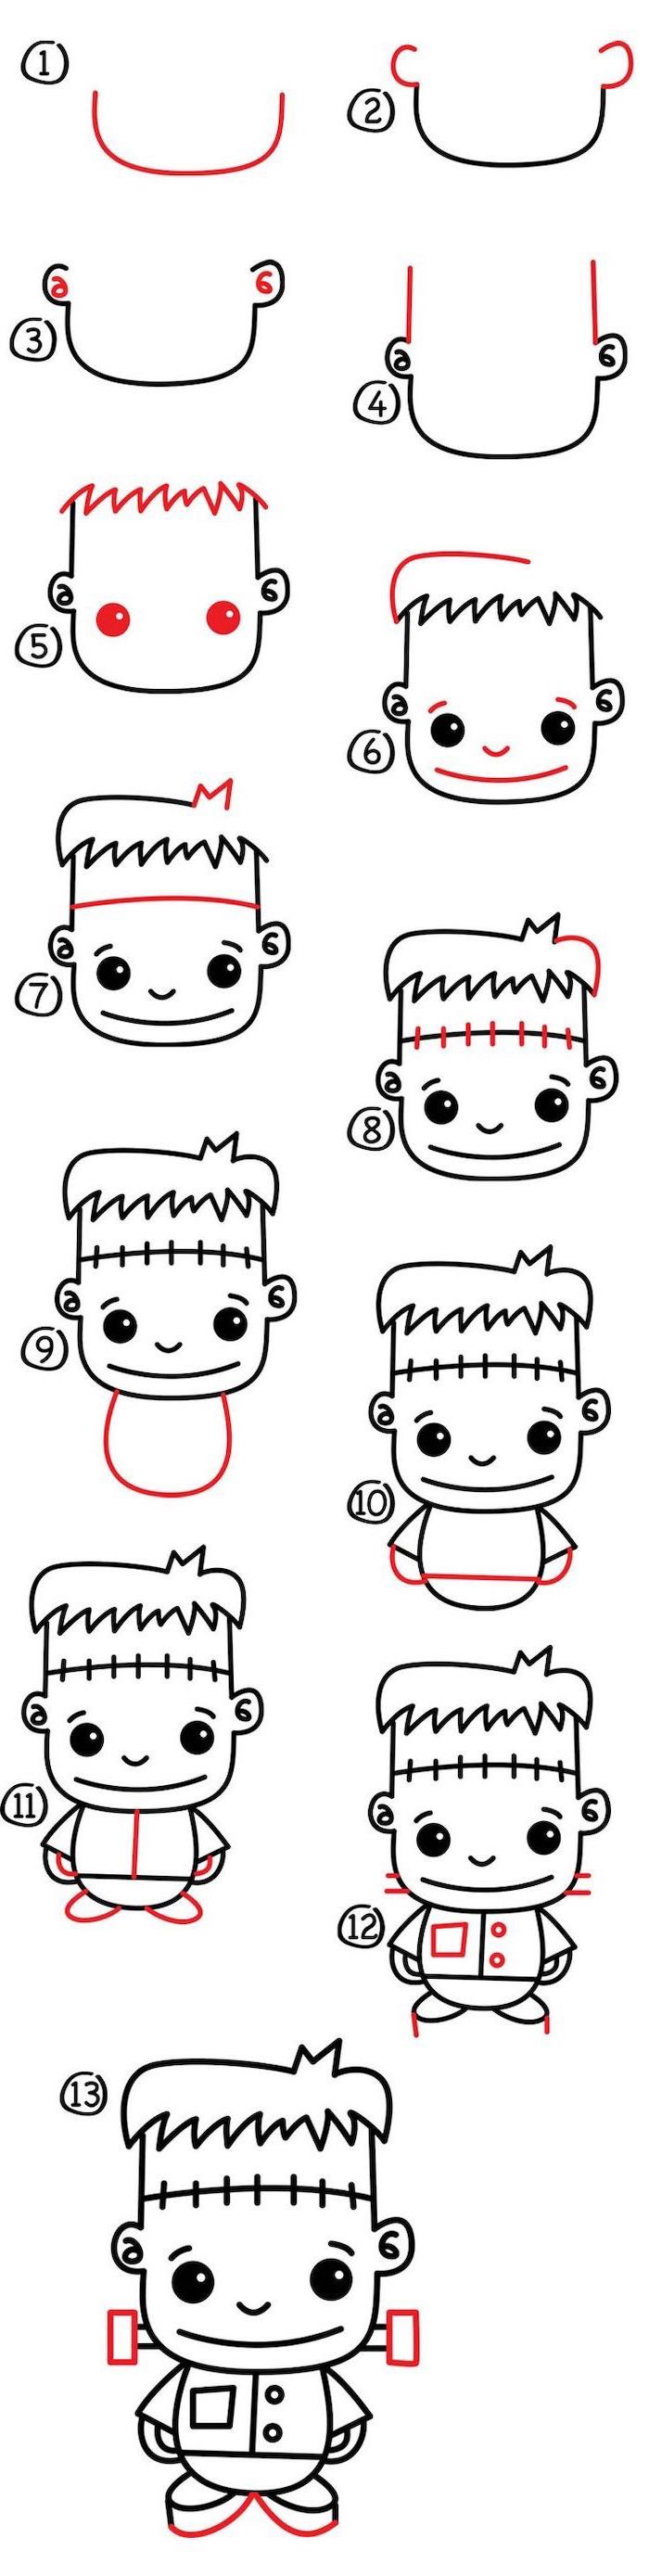 cute kawaii drawings, how to draw frankenstein, step by step diy tutorial, white background